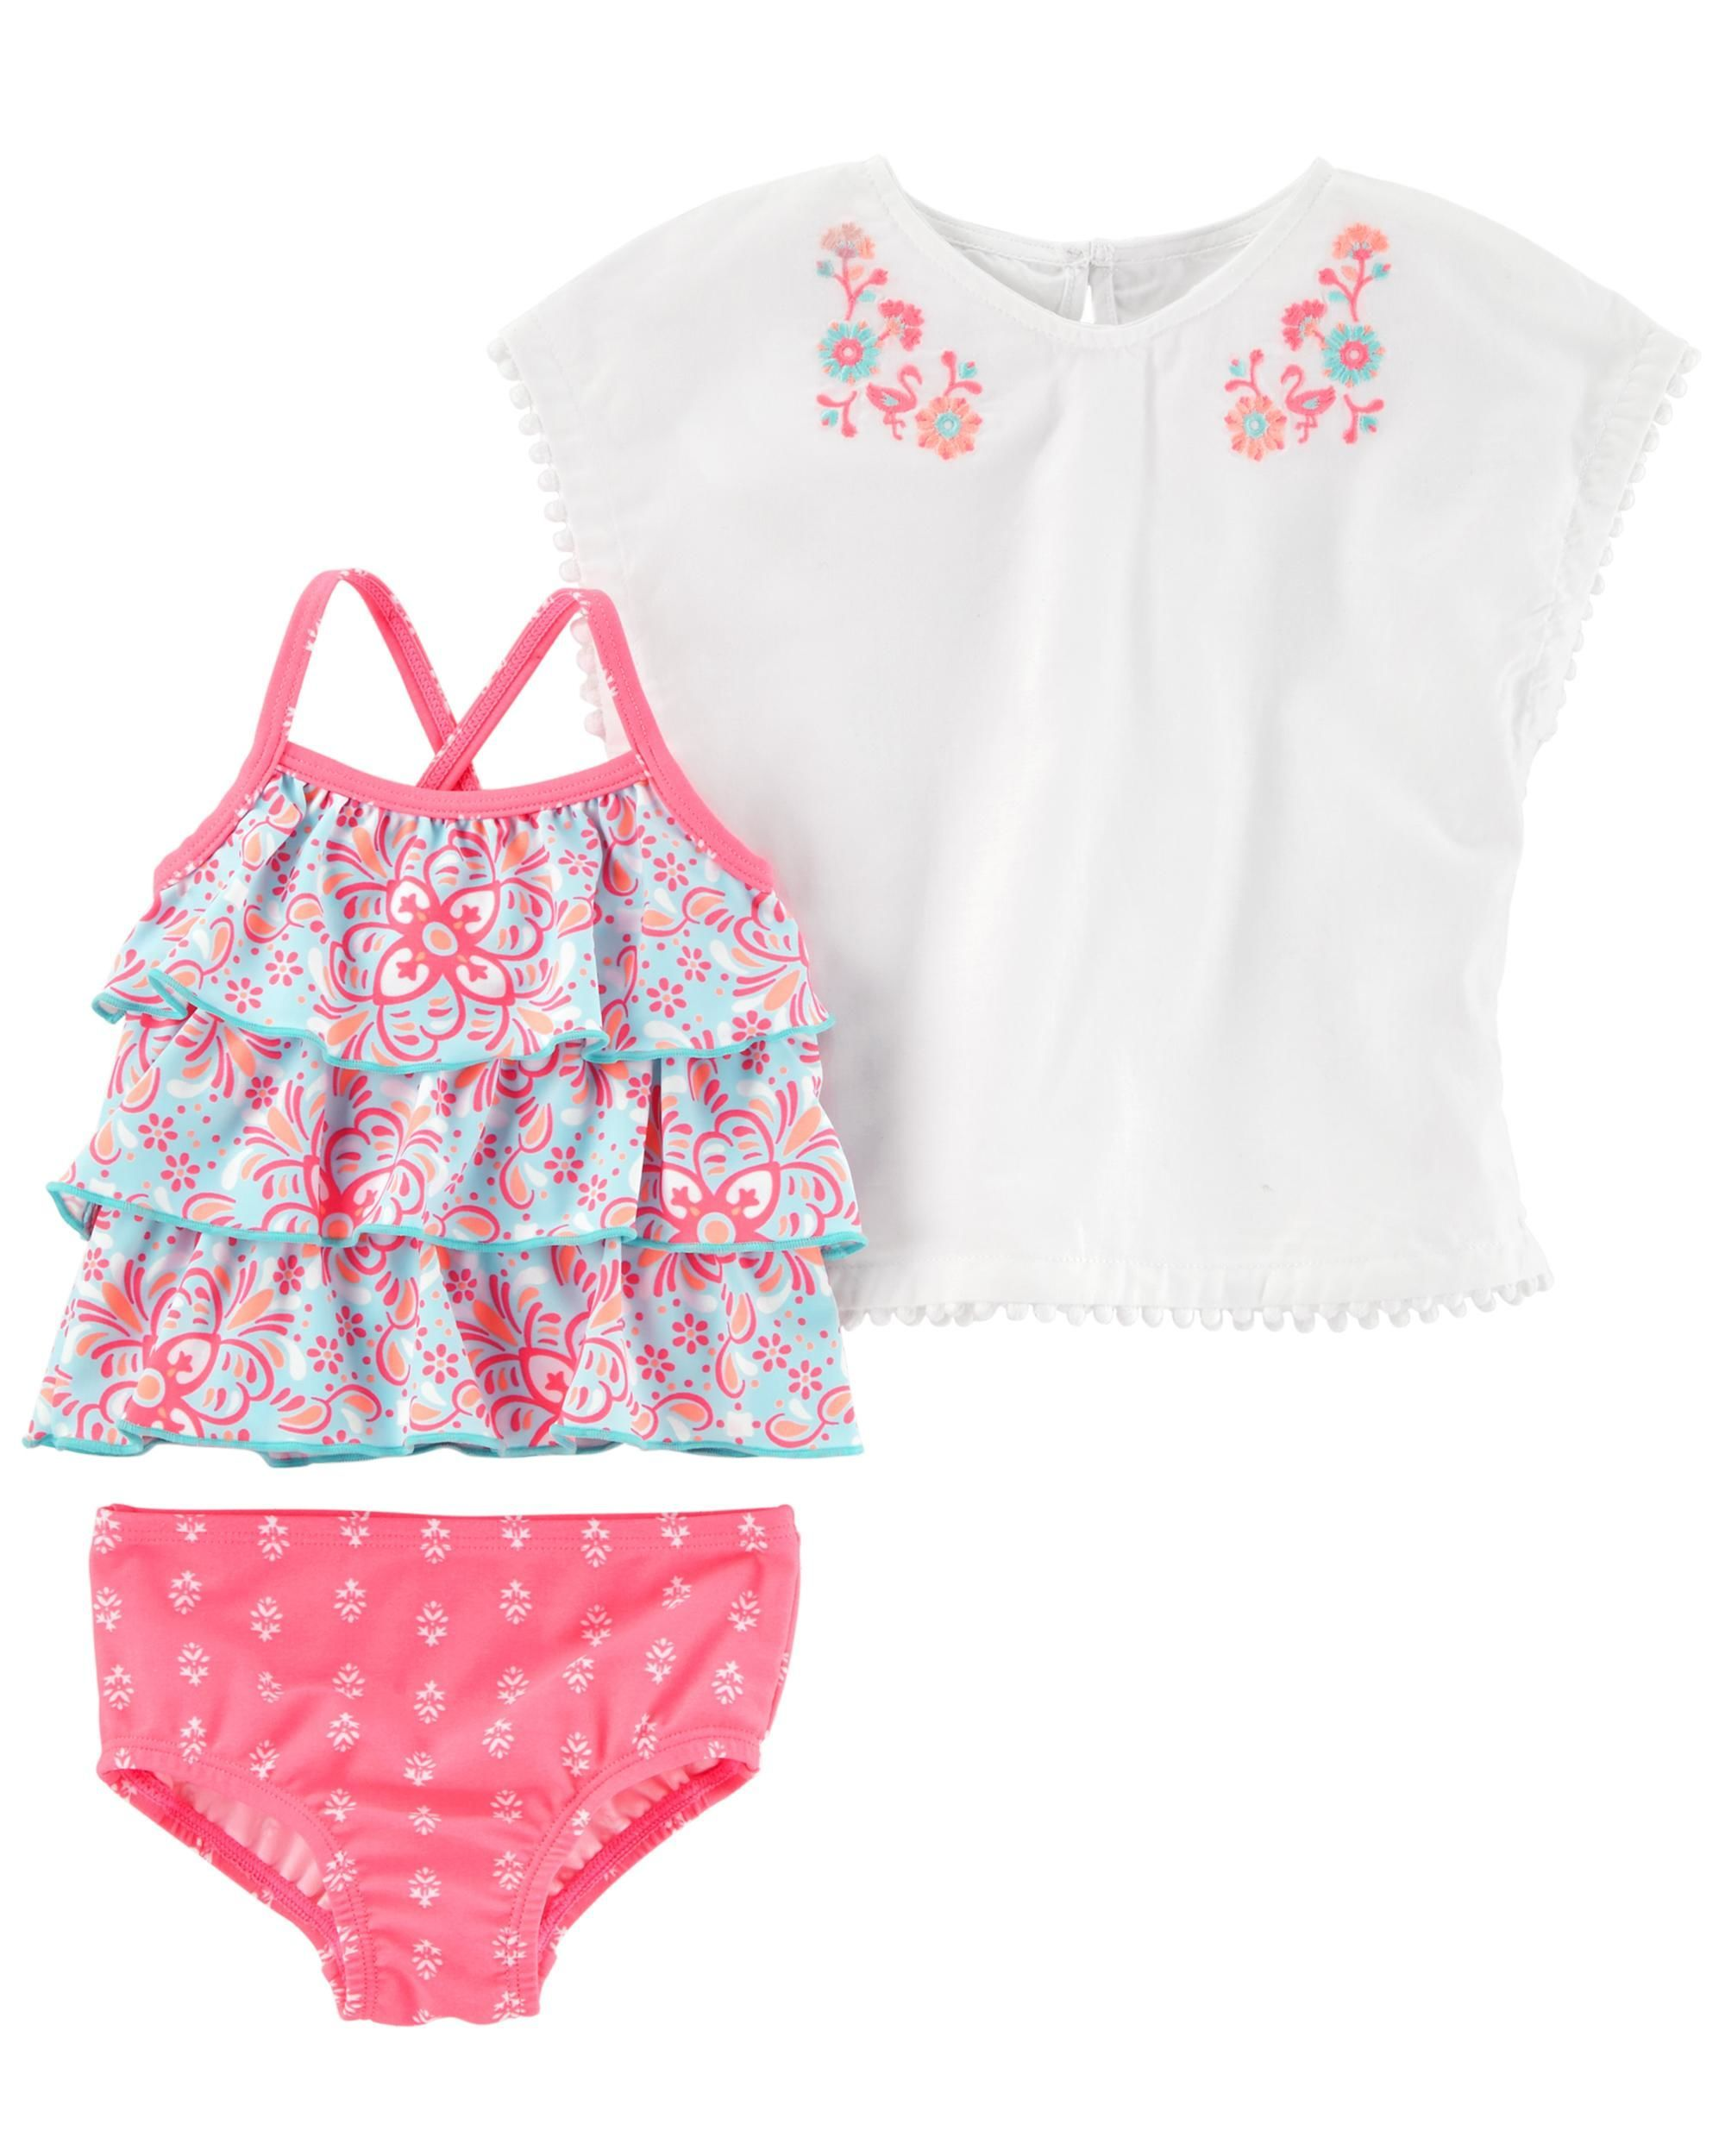 49687e897 3-Piece Tankini & Cover-Up Set | Baby checklist | Baby girl swimsuit ...